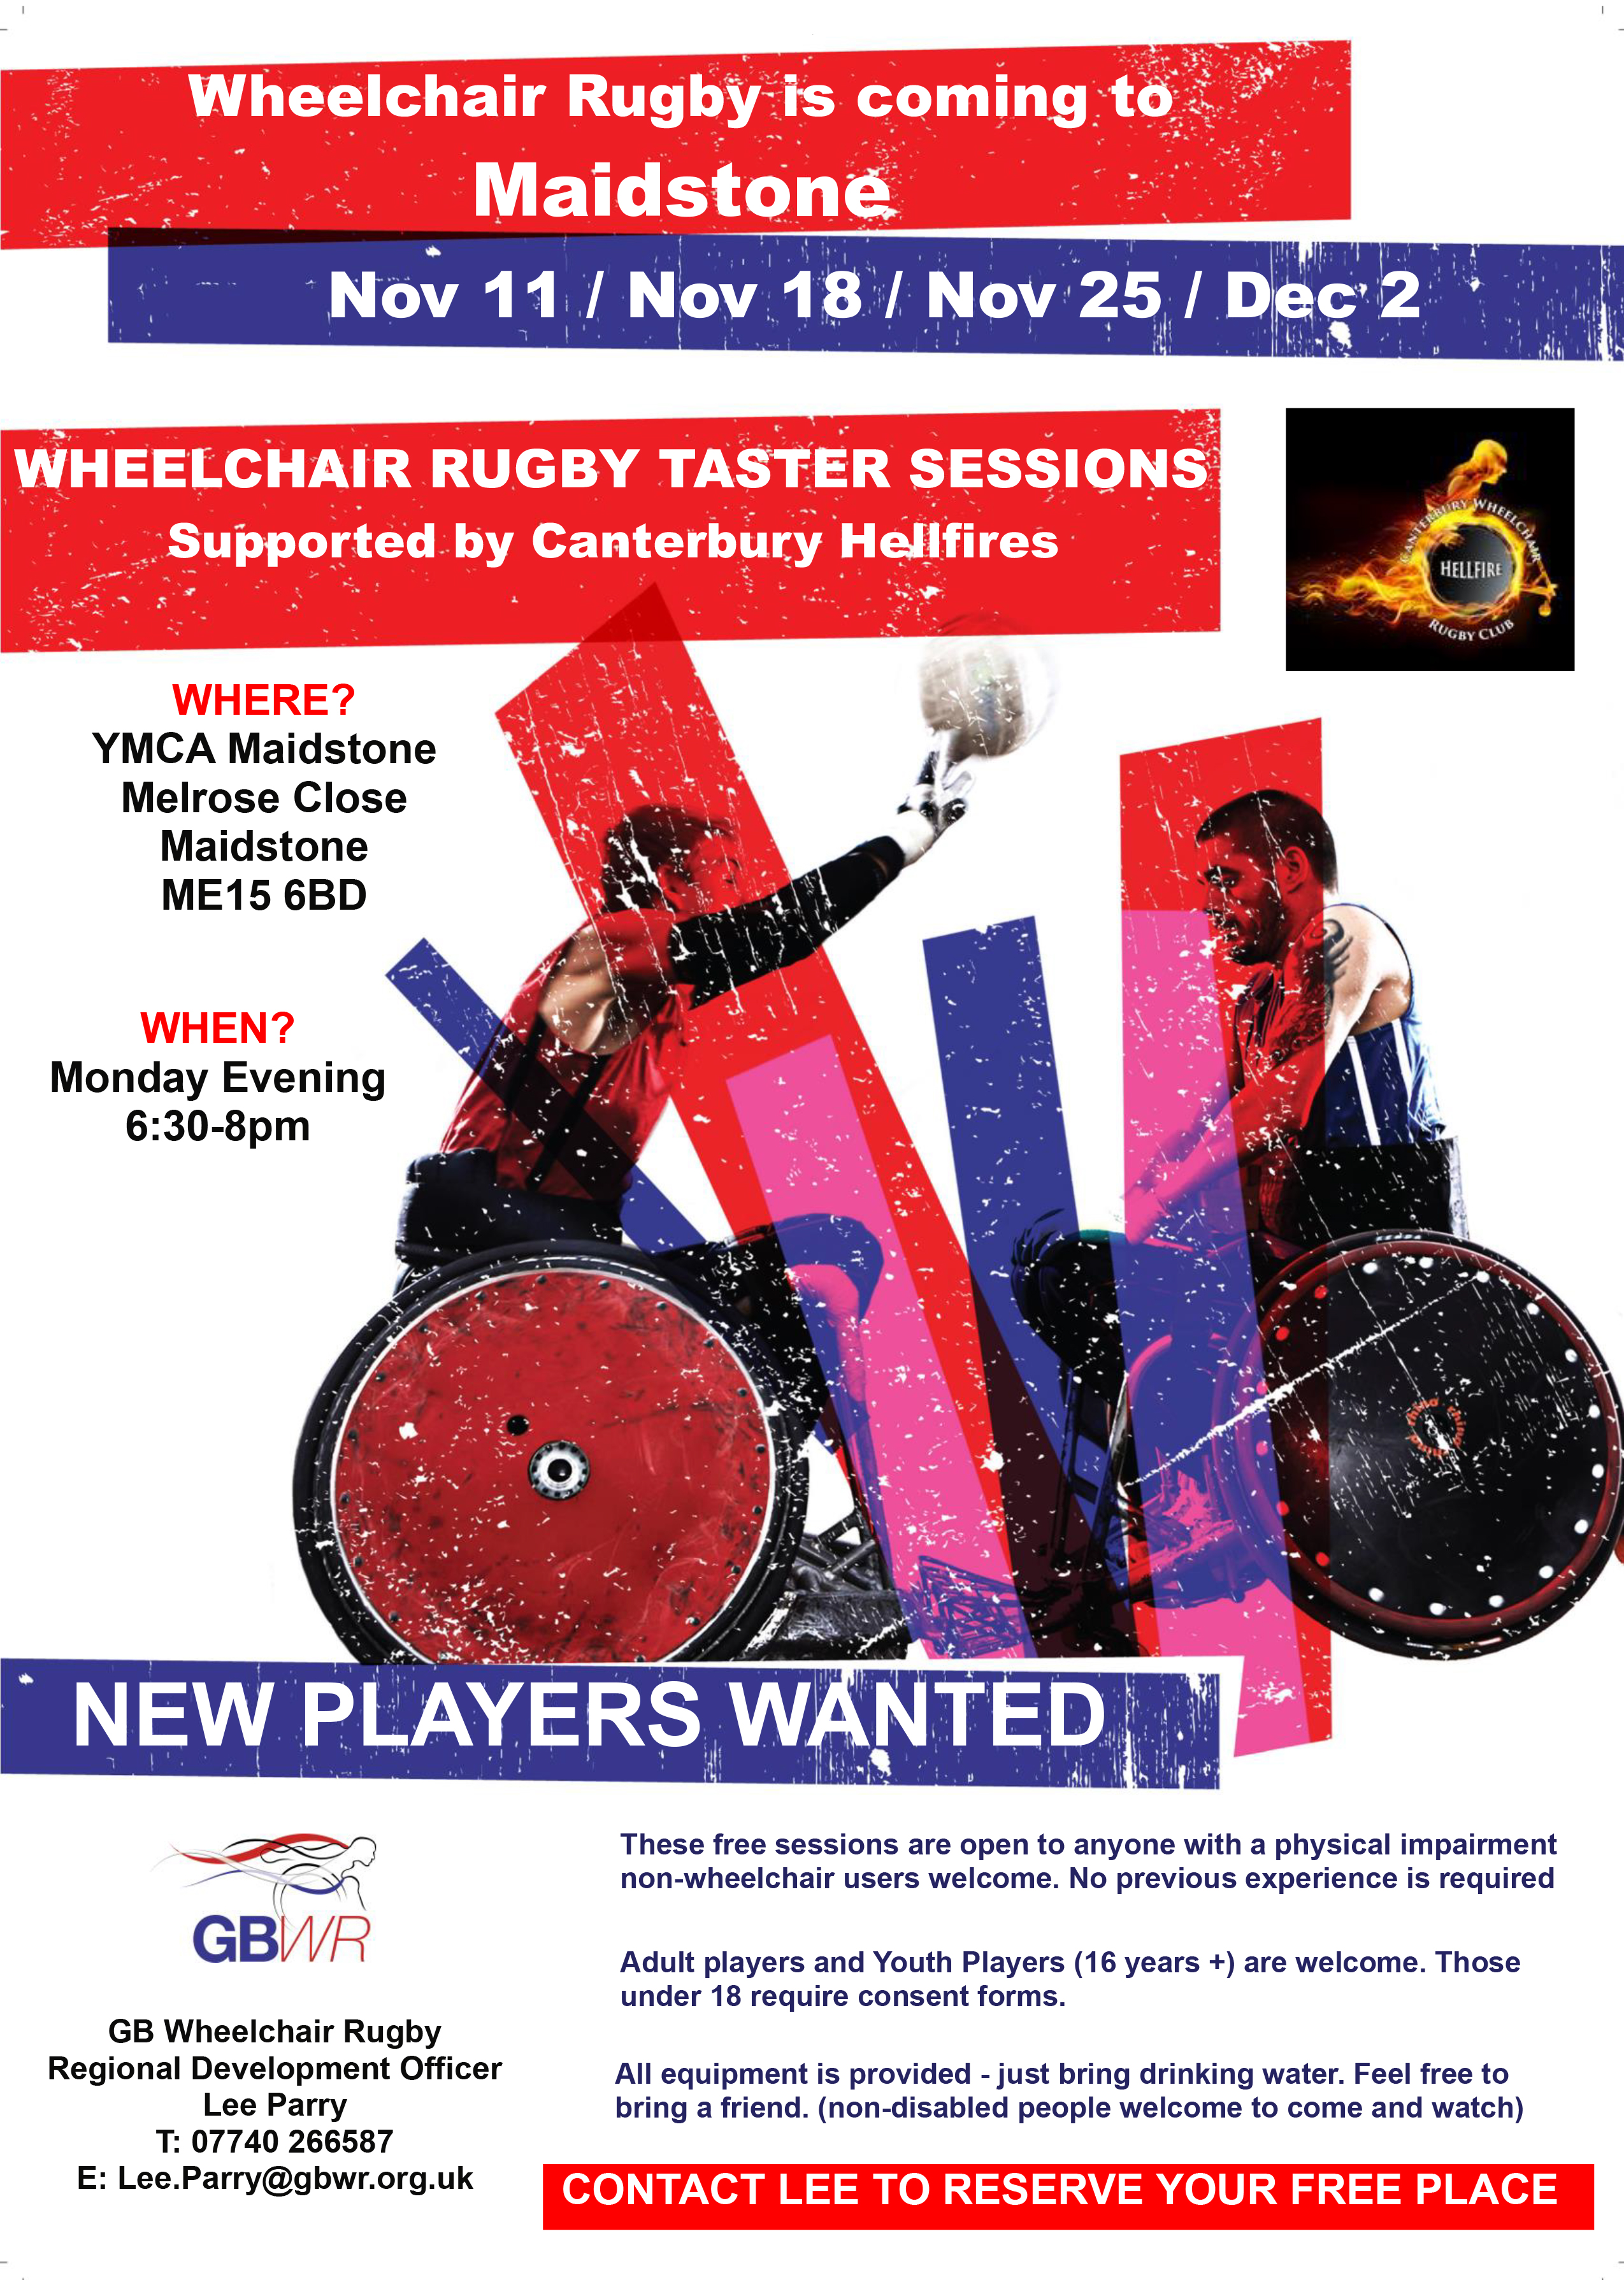 GB Wheelchair Rugby and Canterbury Hellfire Wheelchair Rugby Team are looking for new players